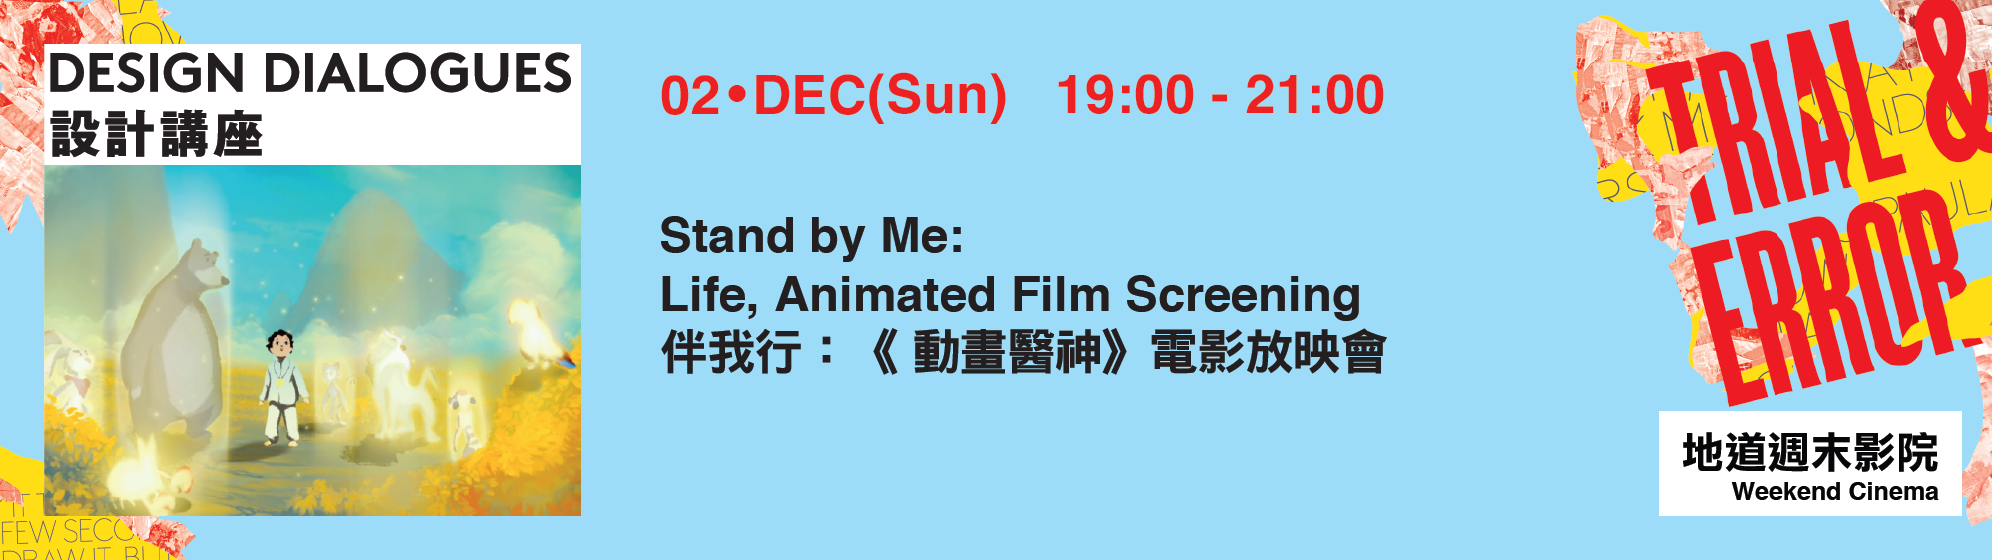 伴我行:《動畫醫神》電影放映會 | Stand by Me: Life, Animated Film Screening